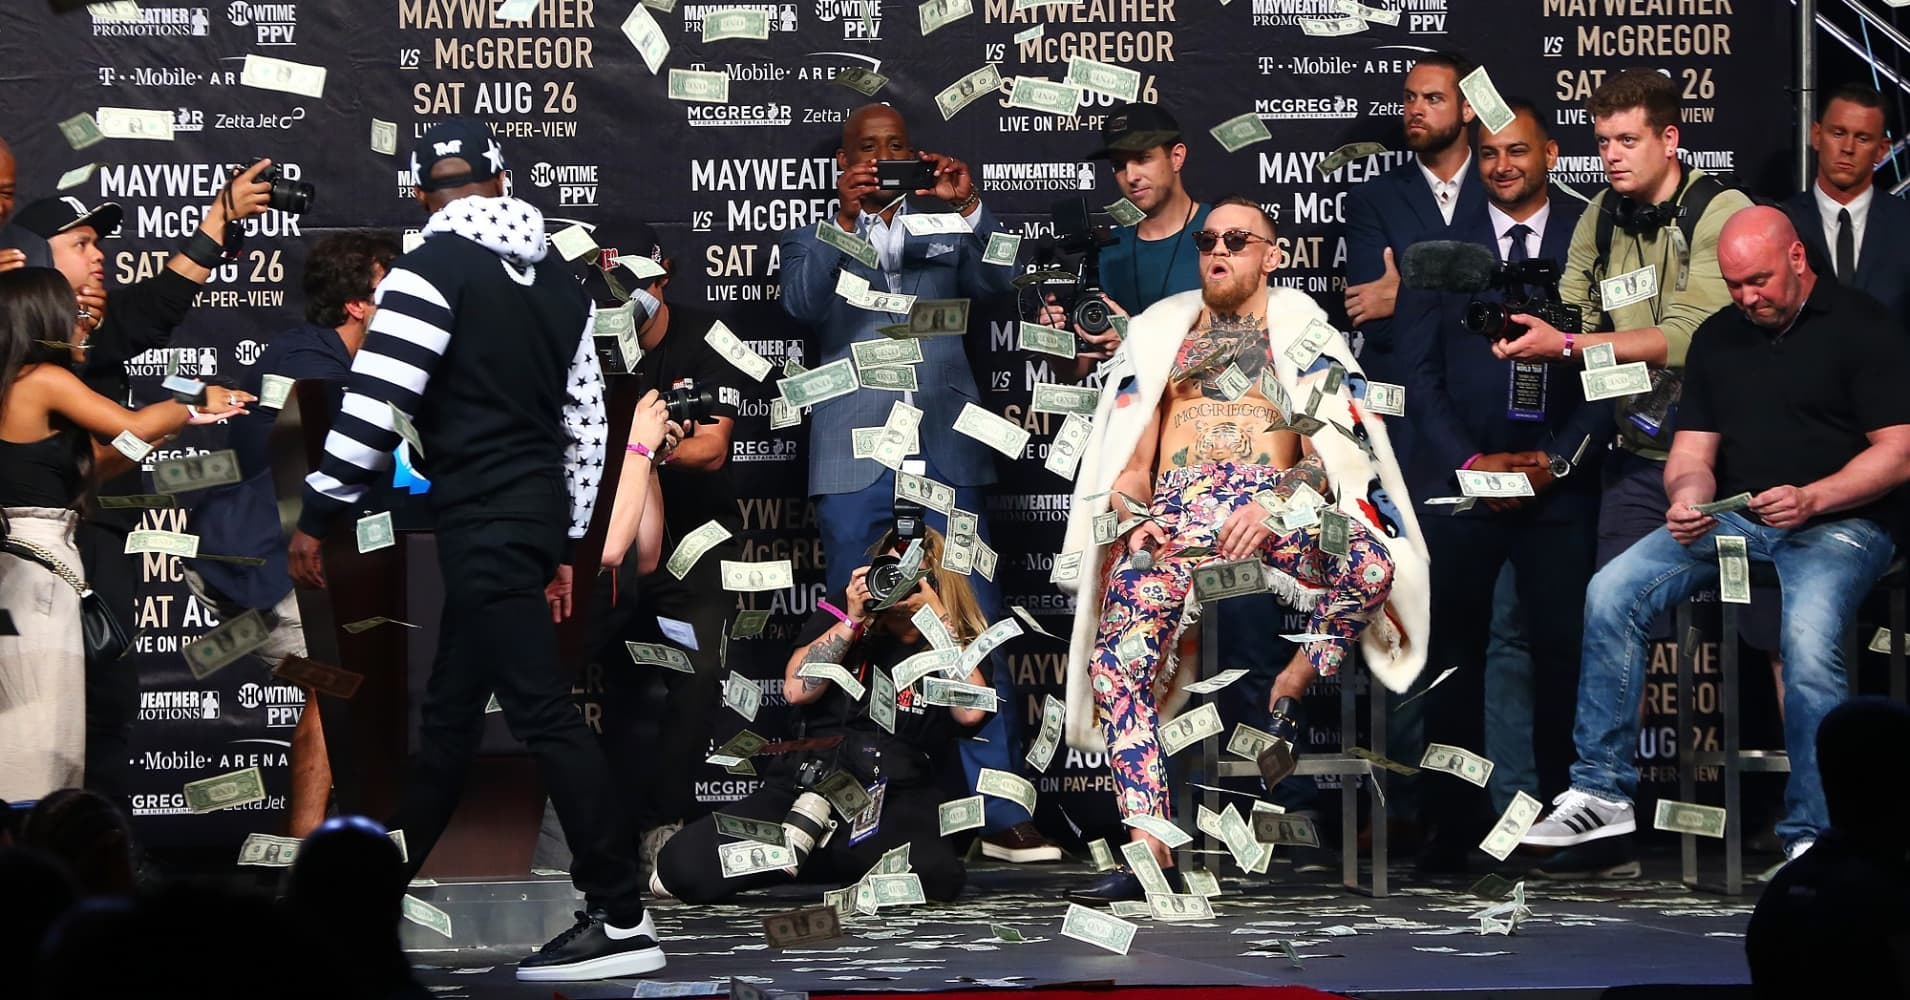 Mayweather Could Make Millions More Than Mcgregor On Saturday